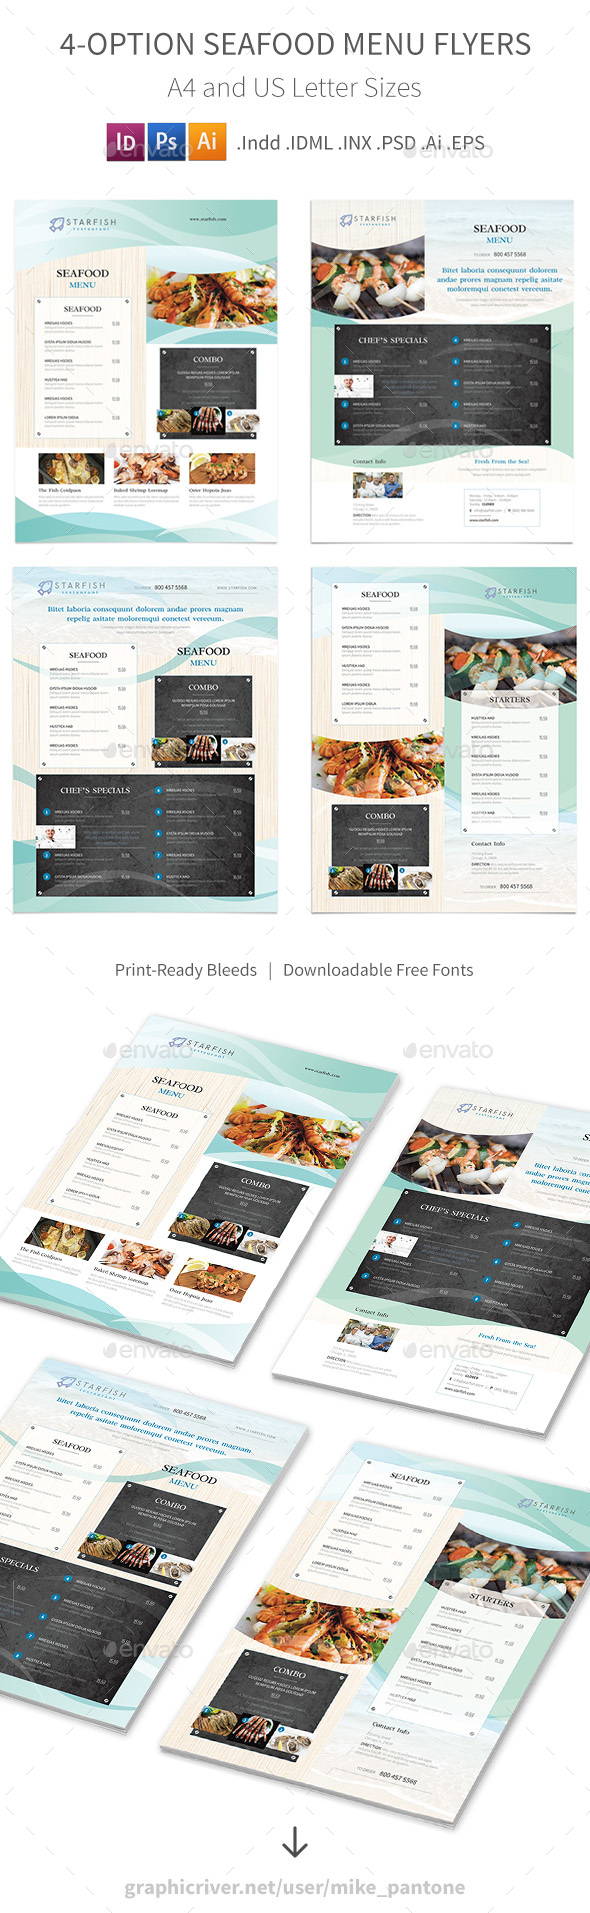 Seafood Restaurant Menu Flyers 2 – 4 Options - Food Menus Print Templates